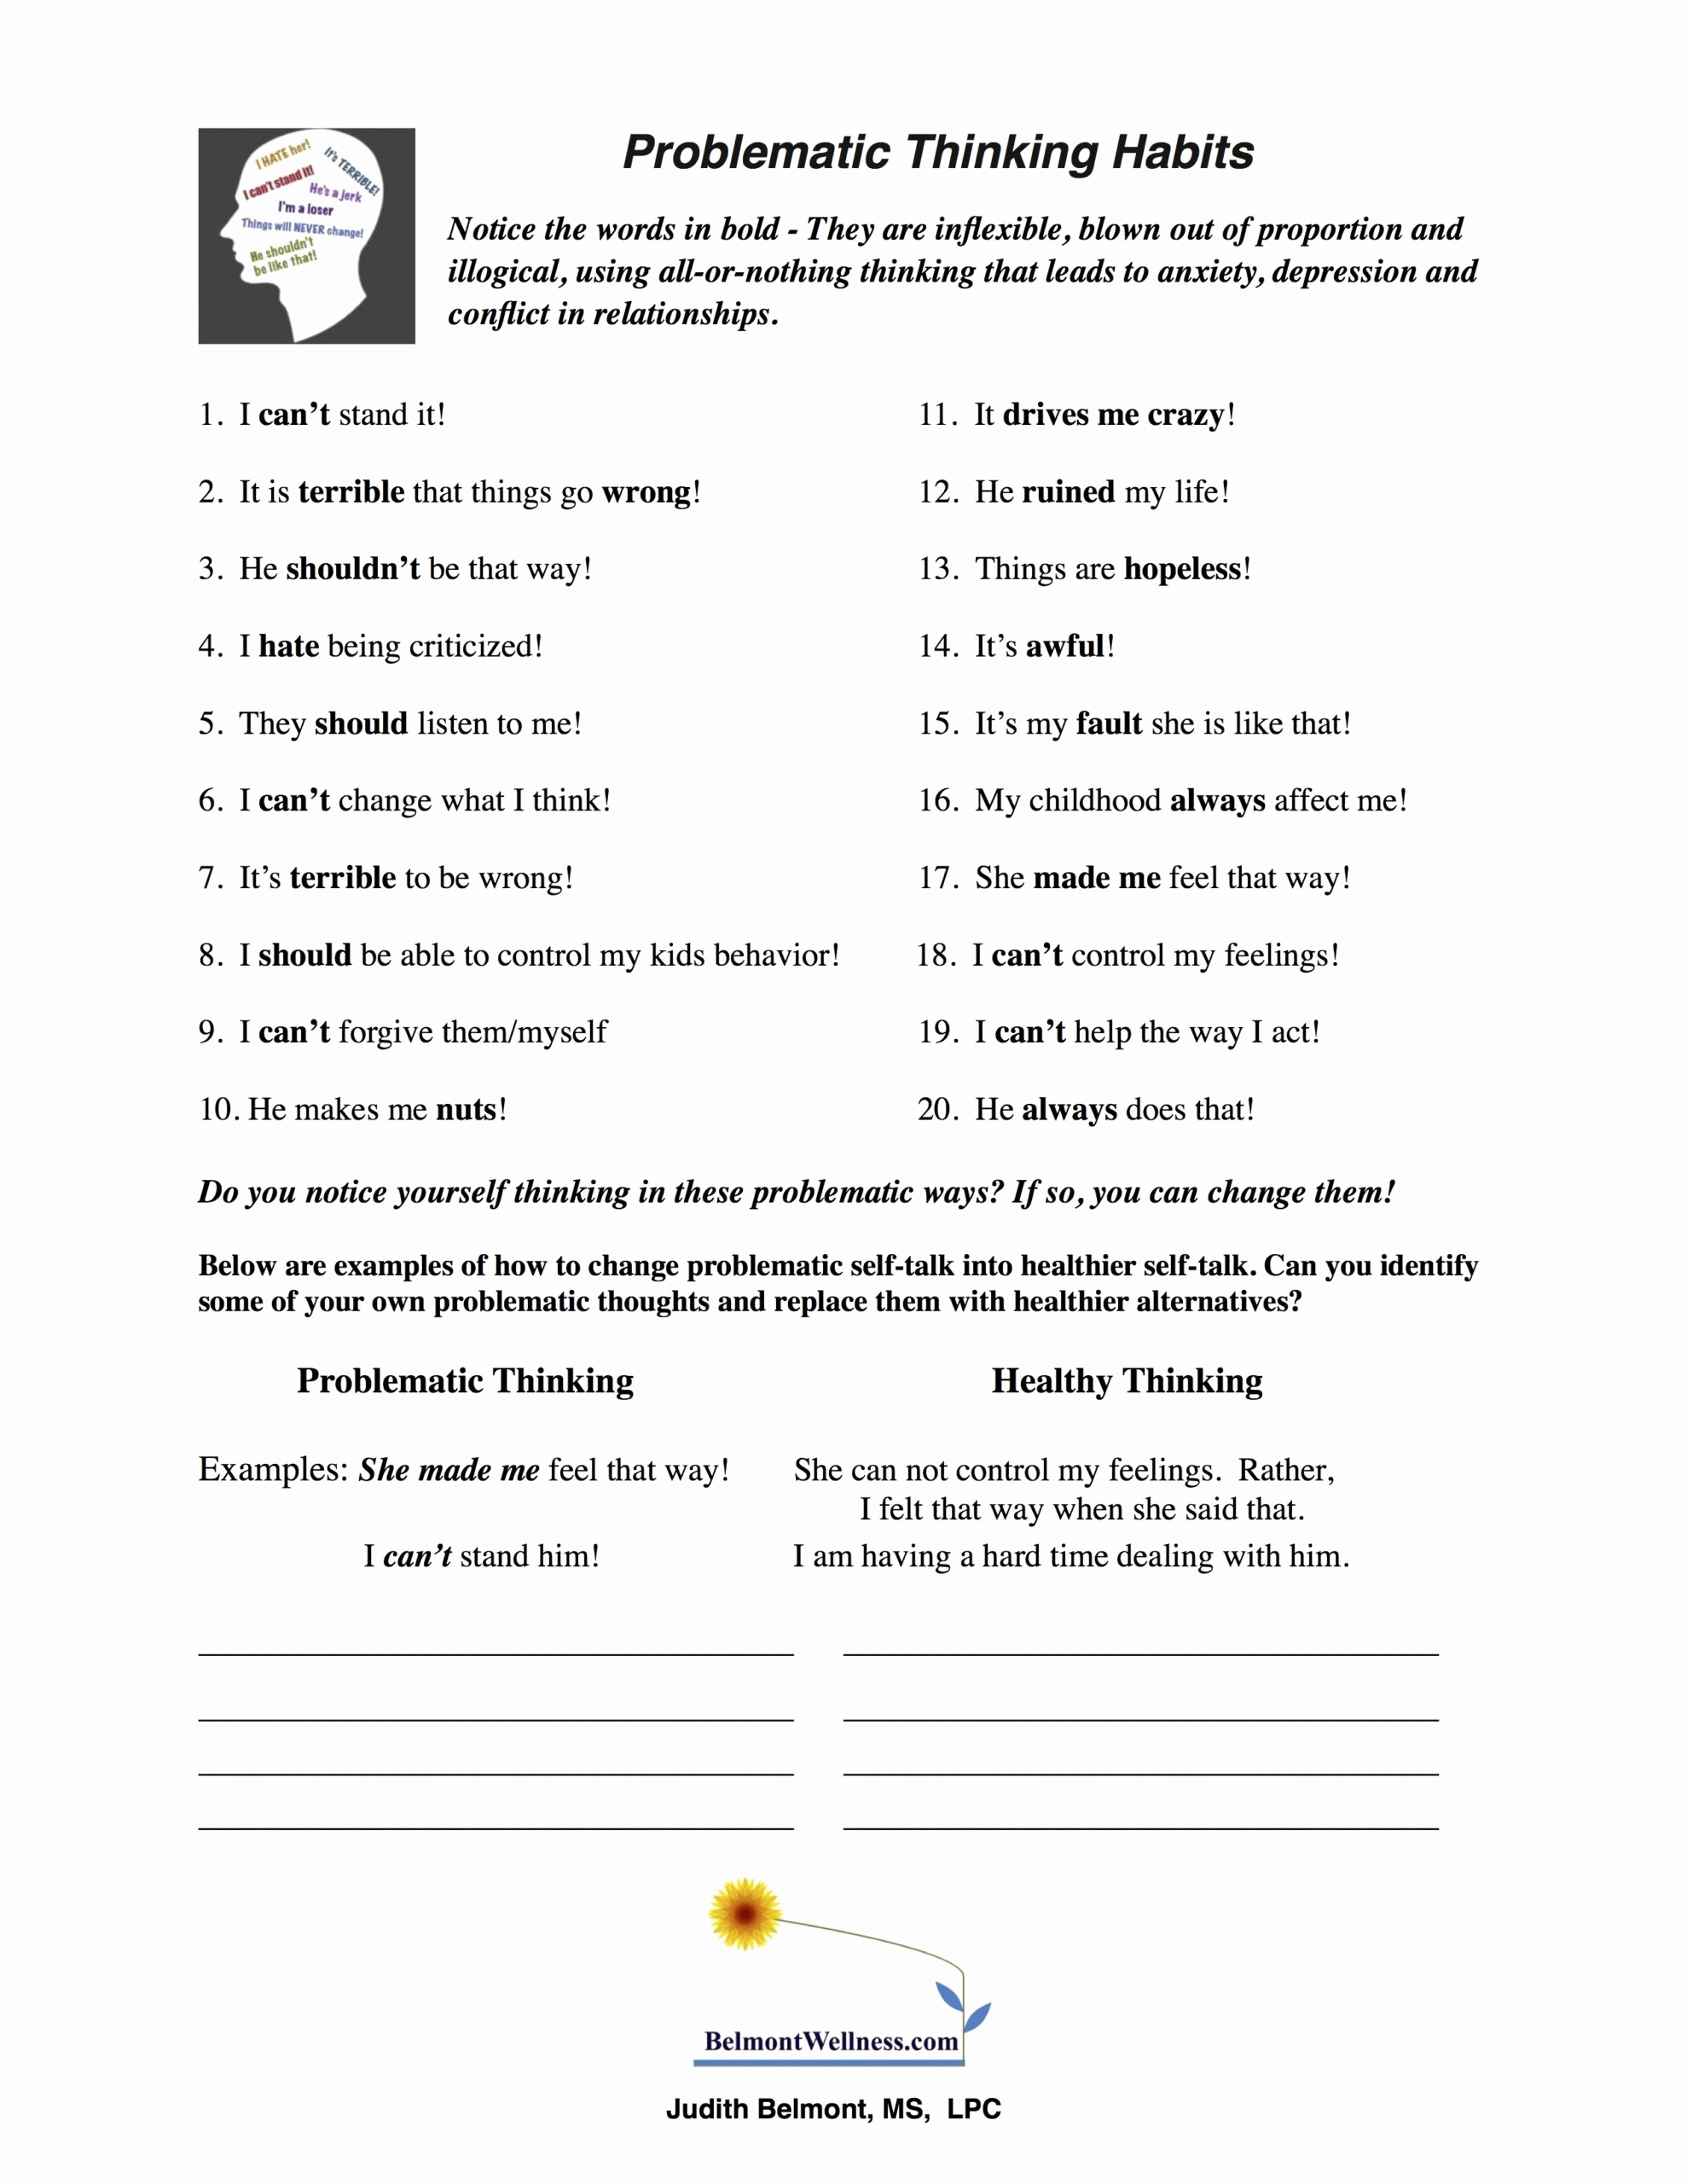 Middle School Health Worksheets Best Of 20 Middle School Health Worksheets